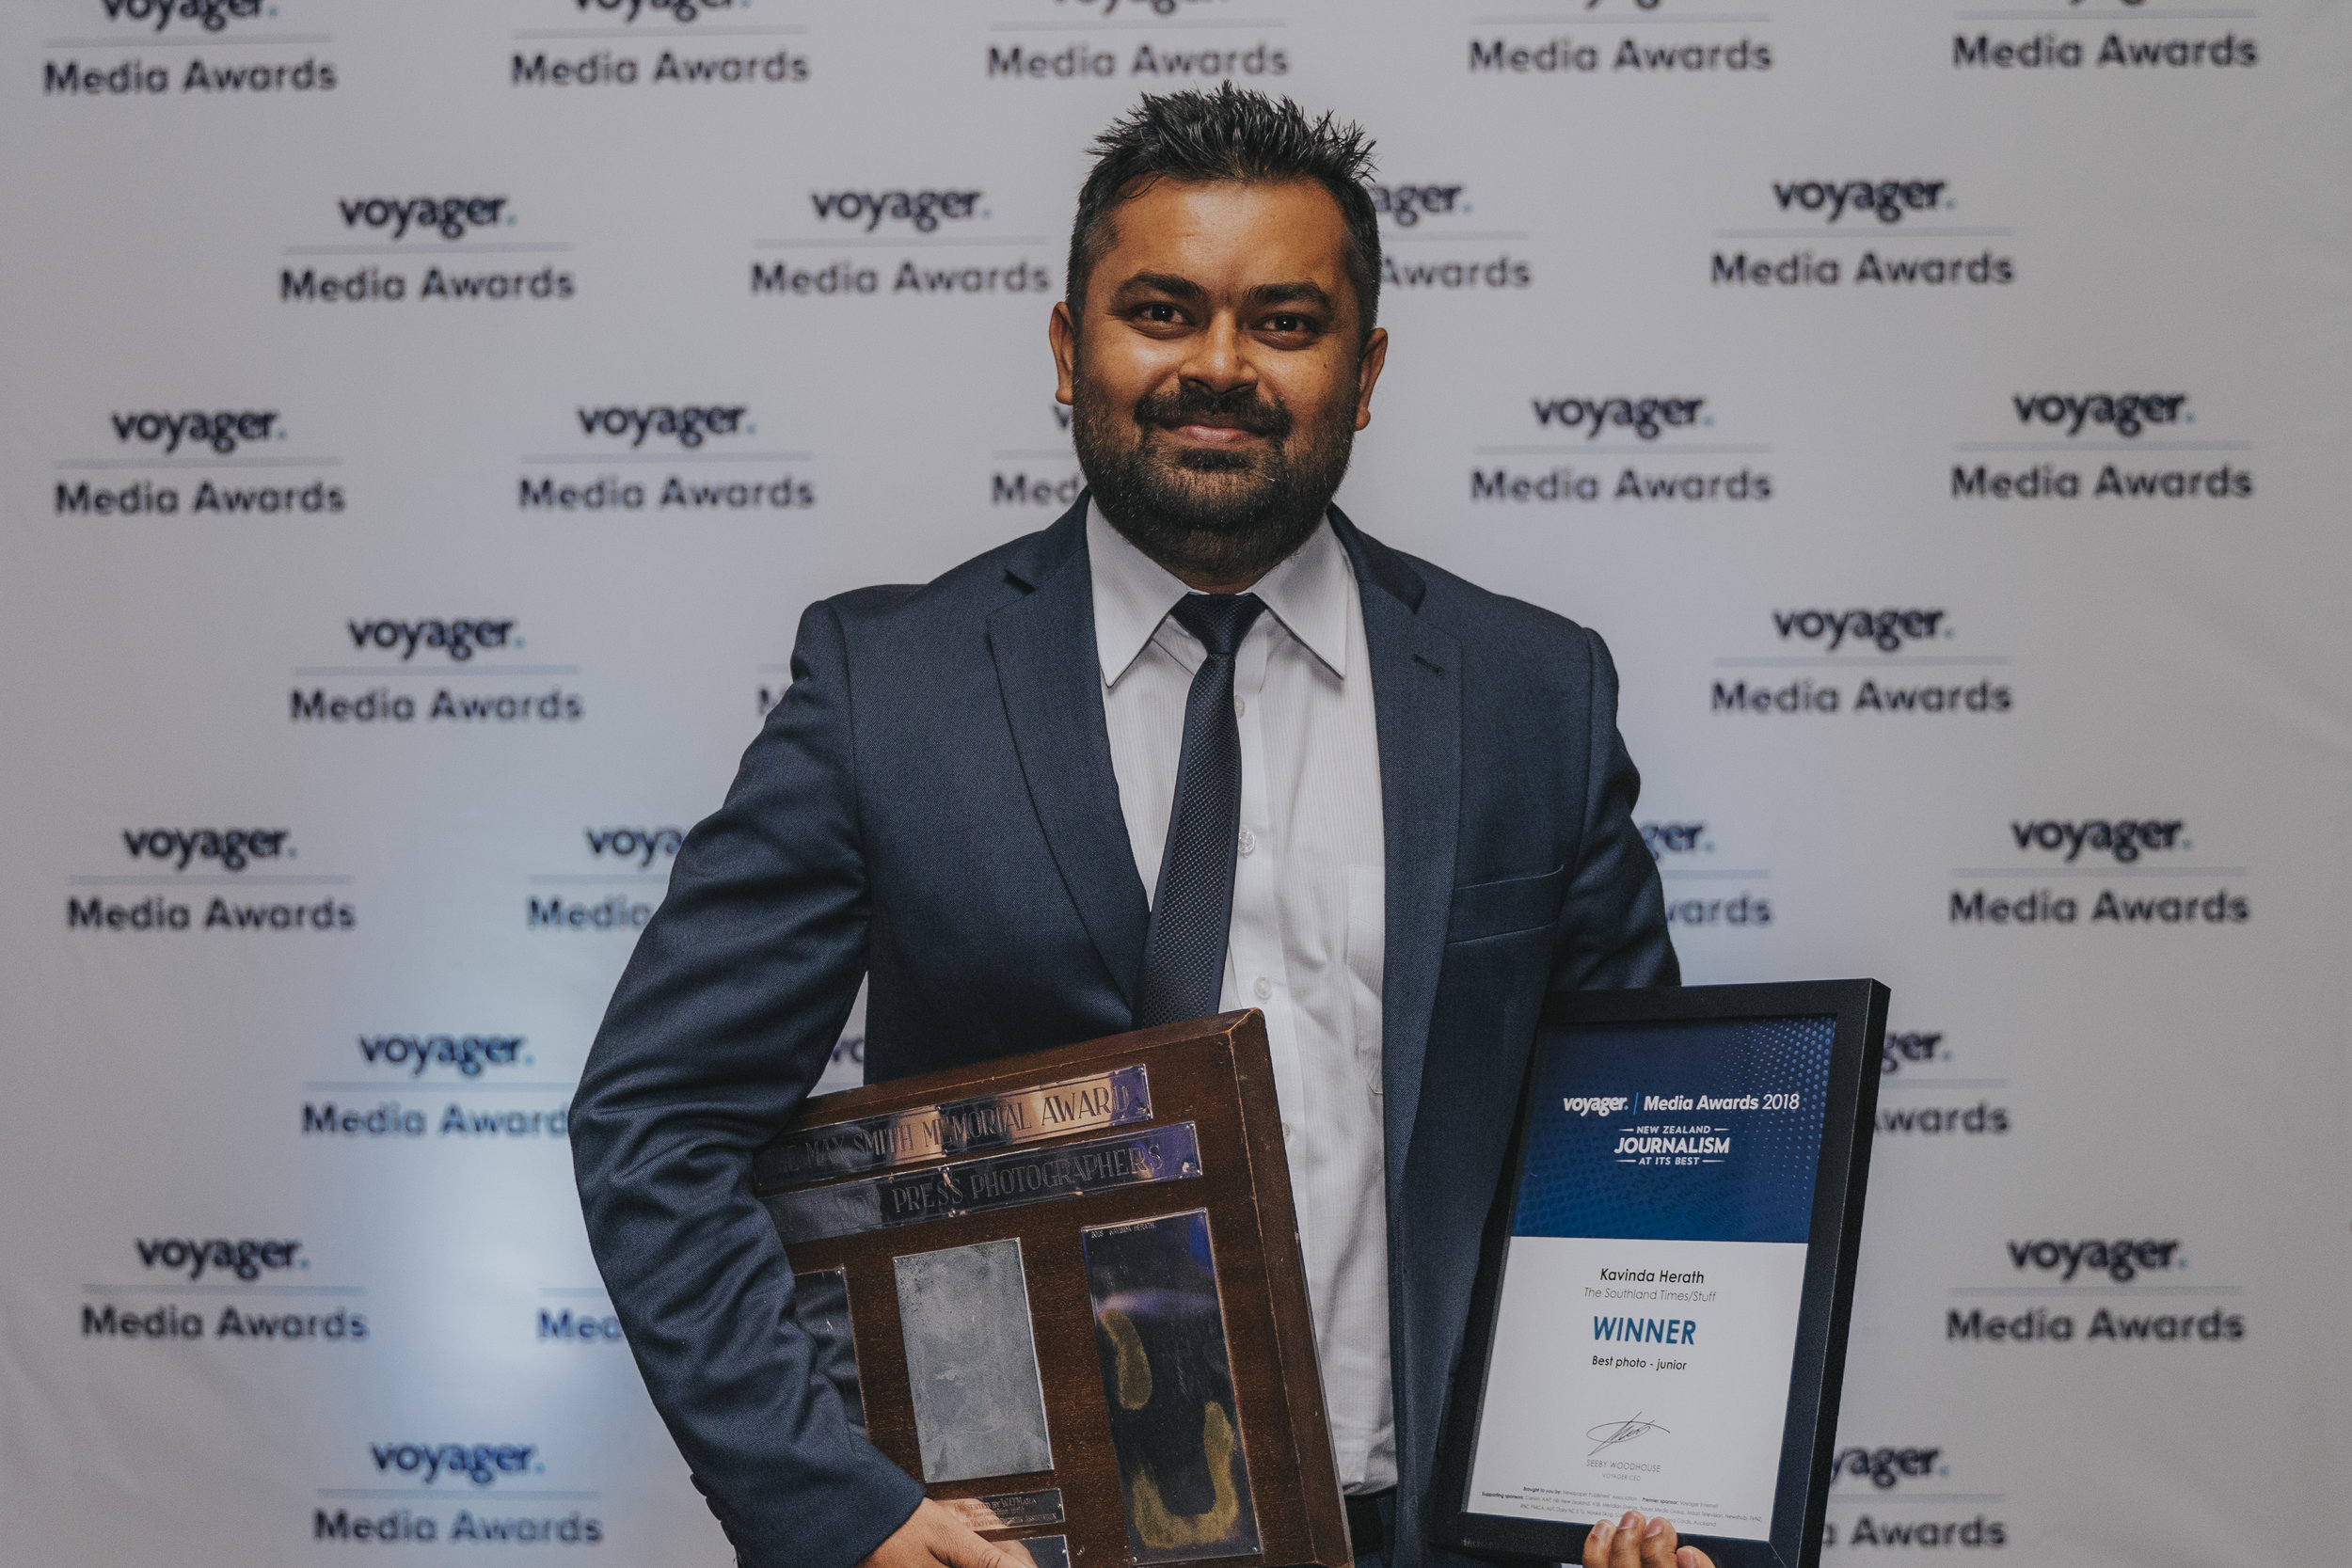 Voyager Media Awards 2018-177.JPG